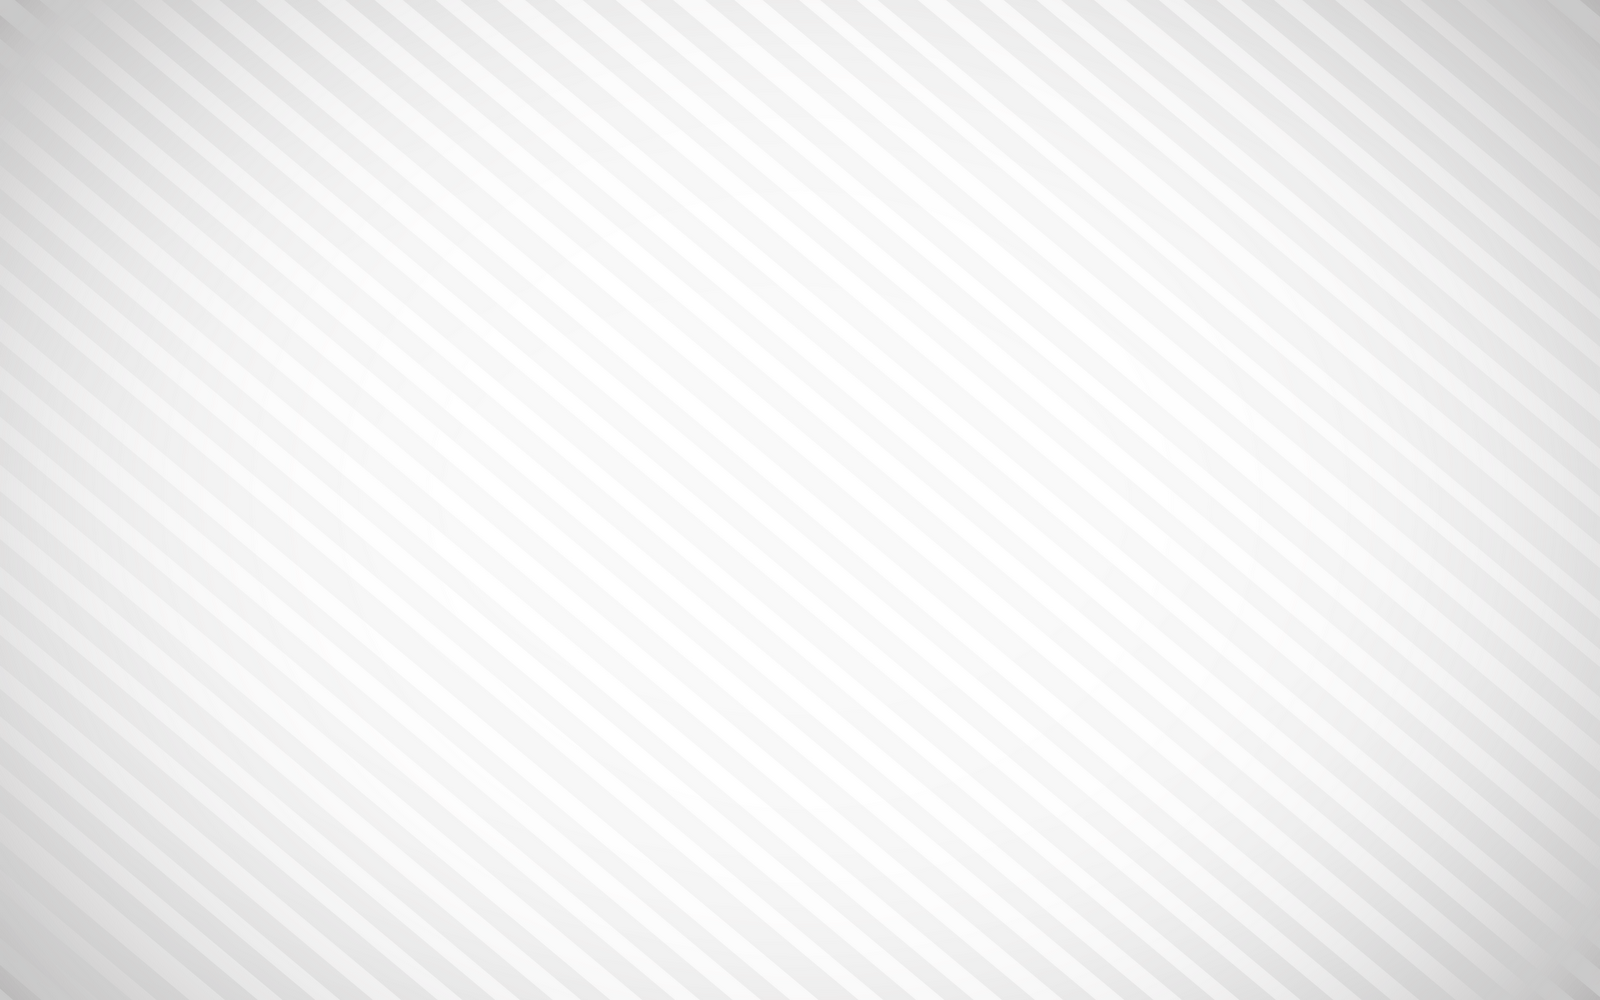 White abstract wallpaper wallpapersafari - White abstract background hd ...